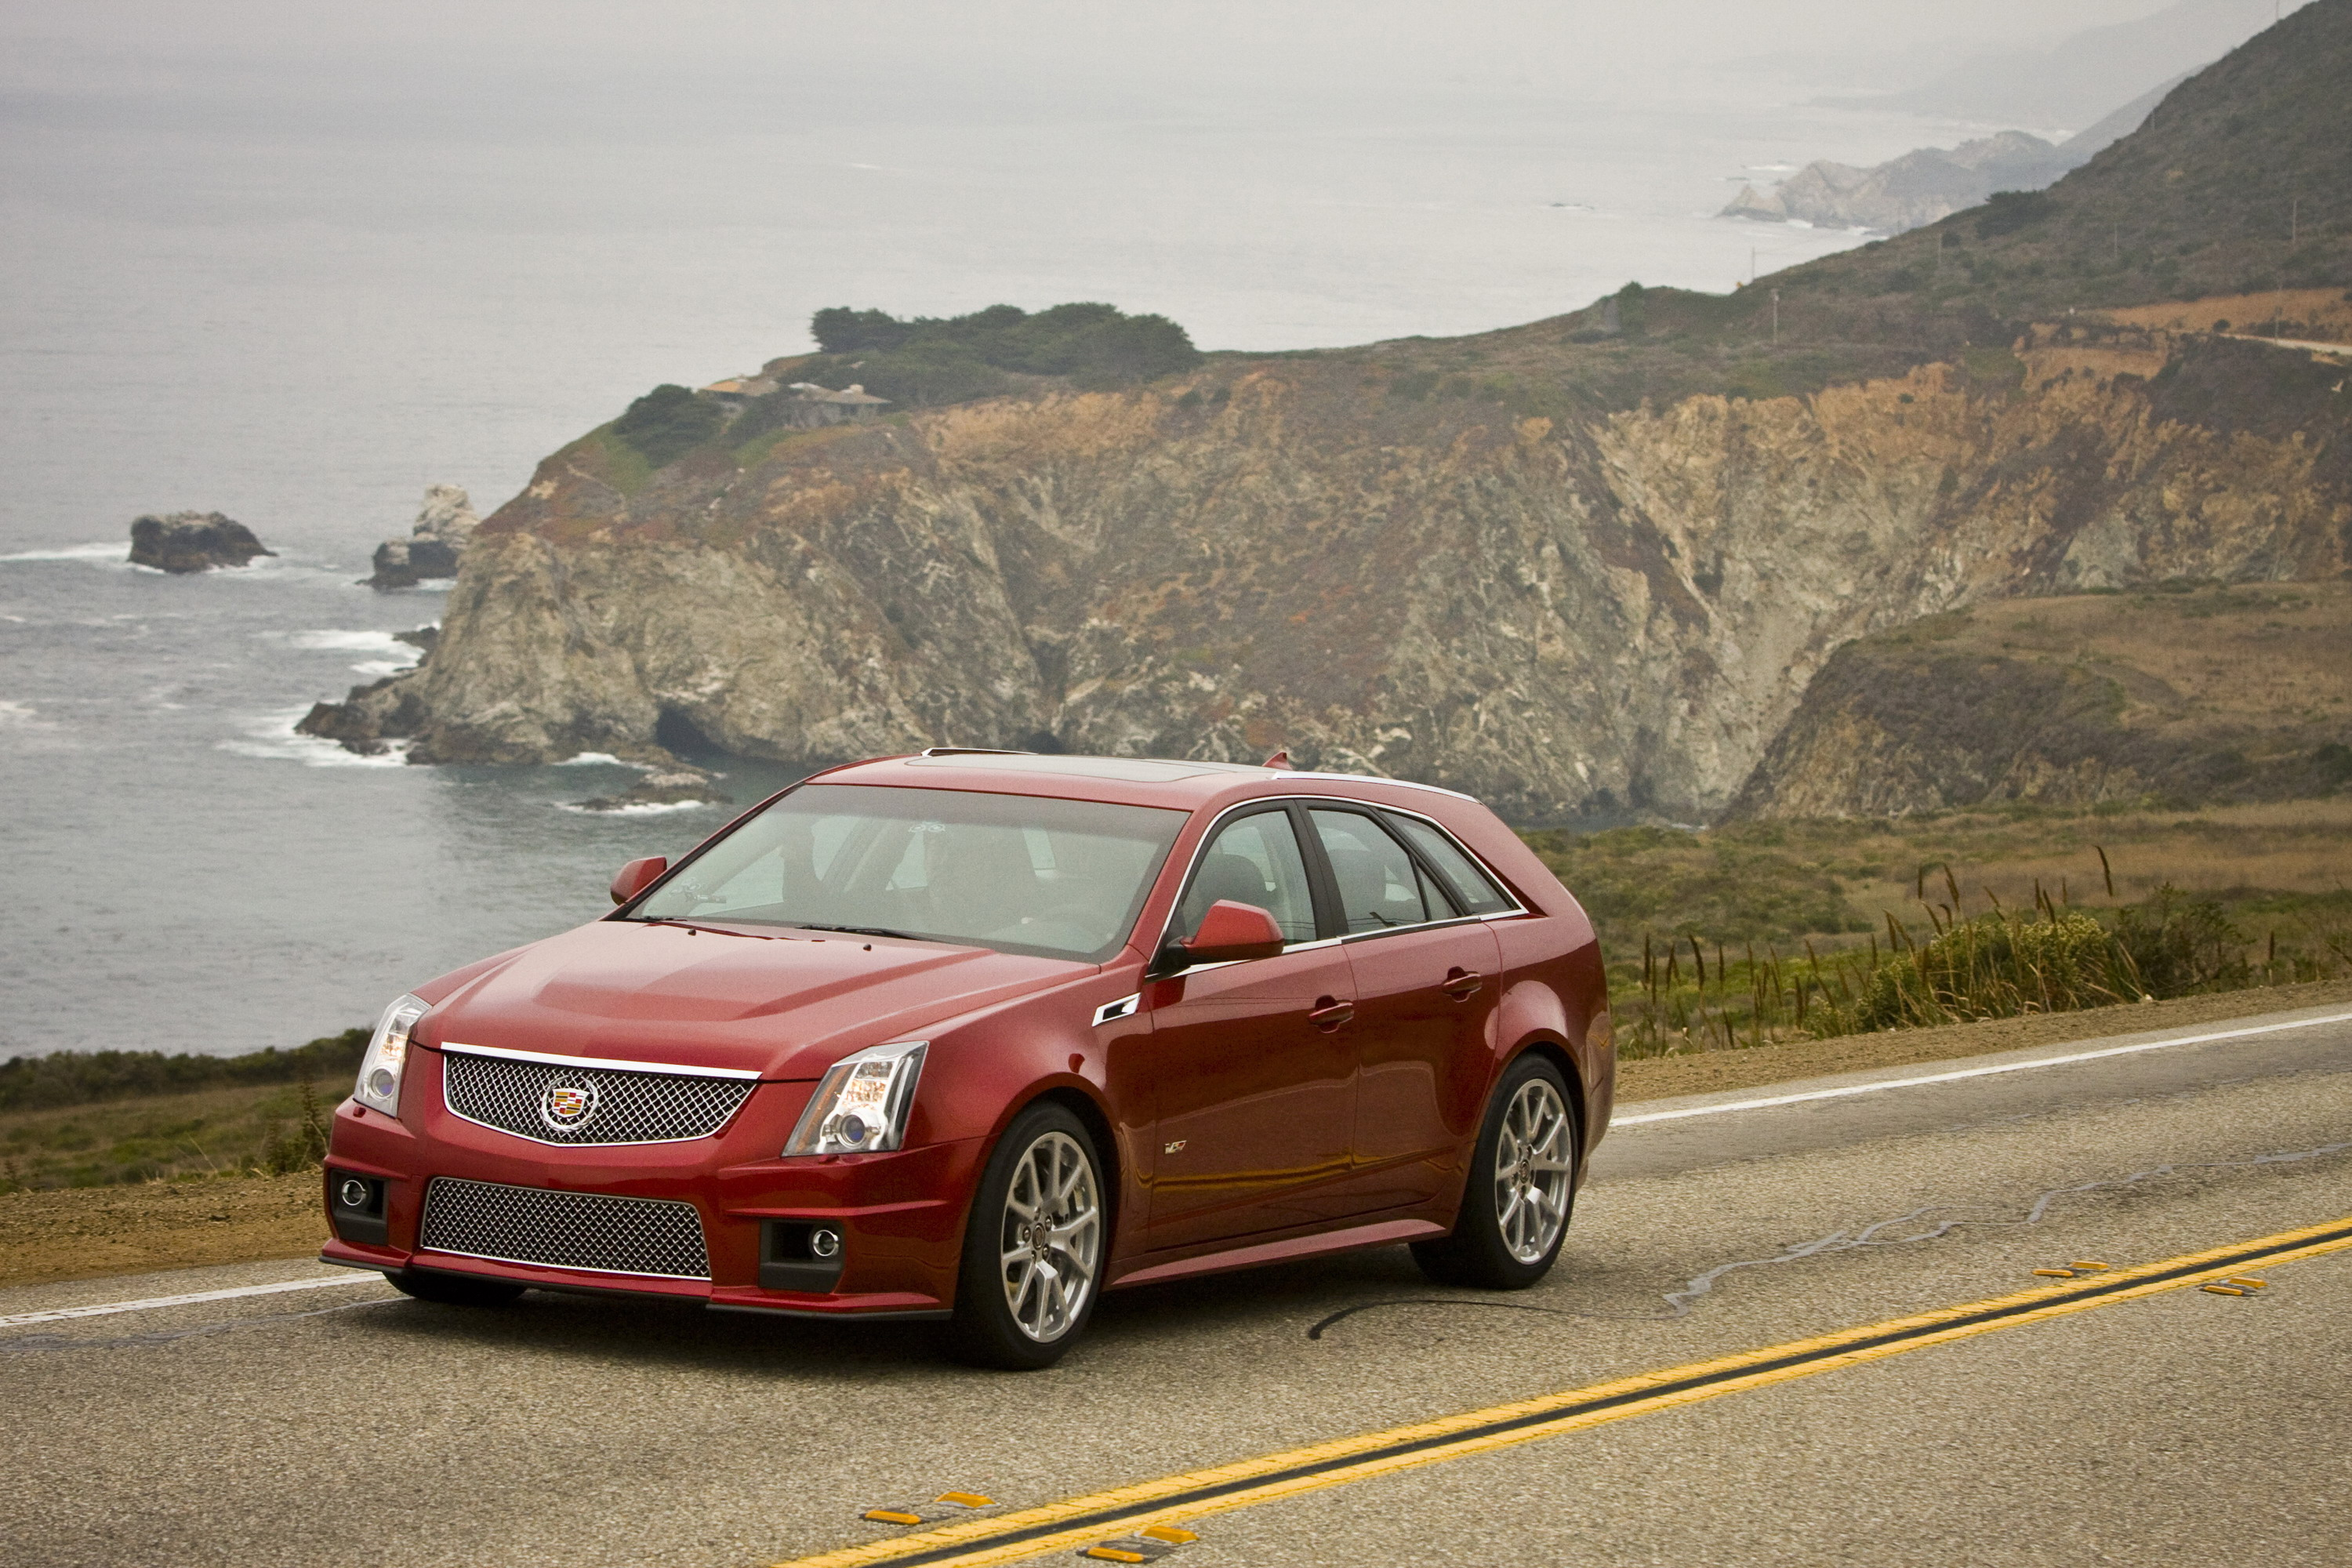 2014 Cadillac Cts V Wagon Gallery 545934 Top Speed